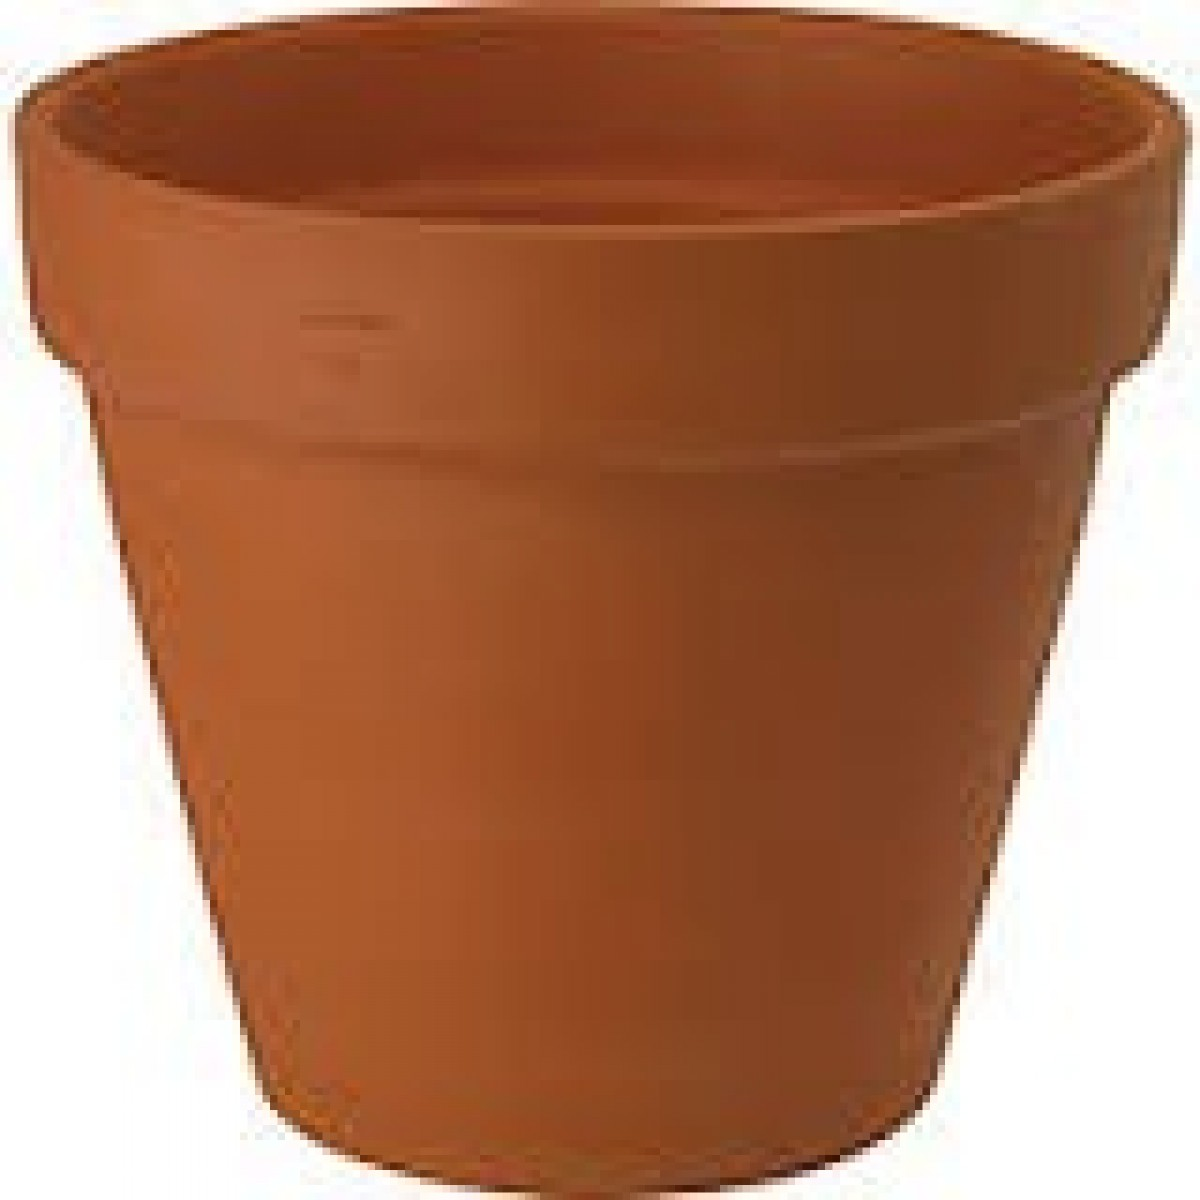 Clay Terracotta Pots (25cm) in the Hire - Rustic & Vintage category